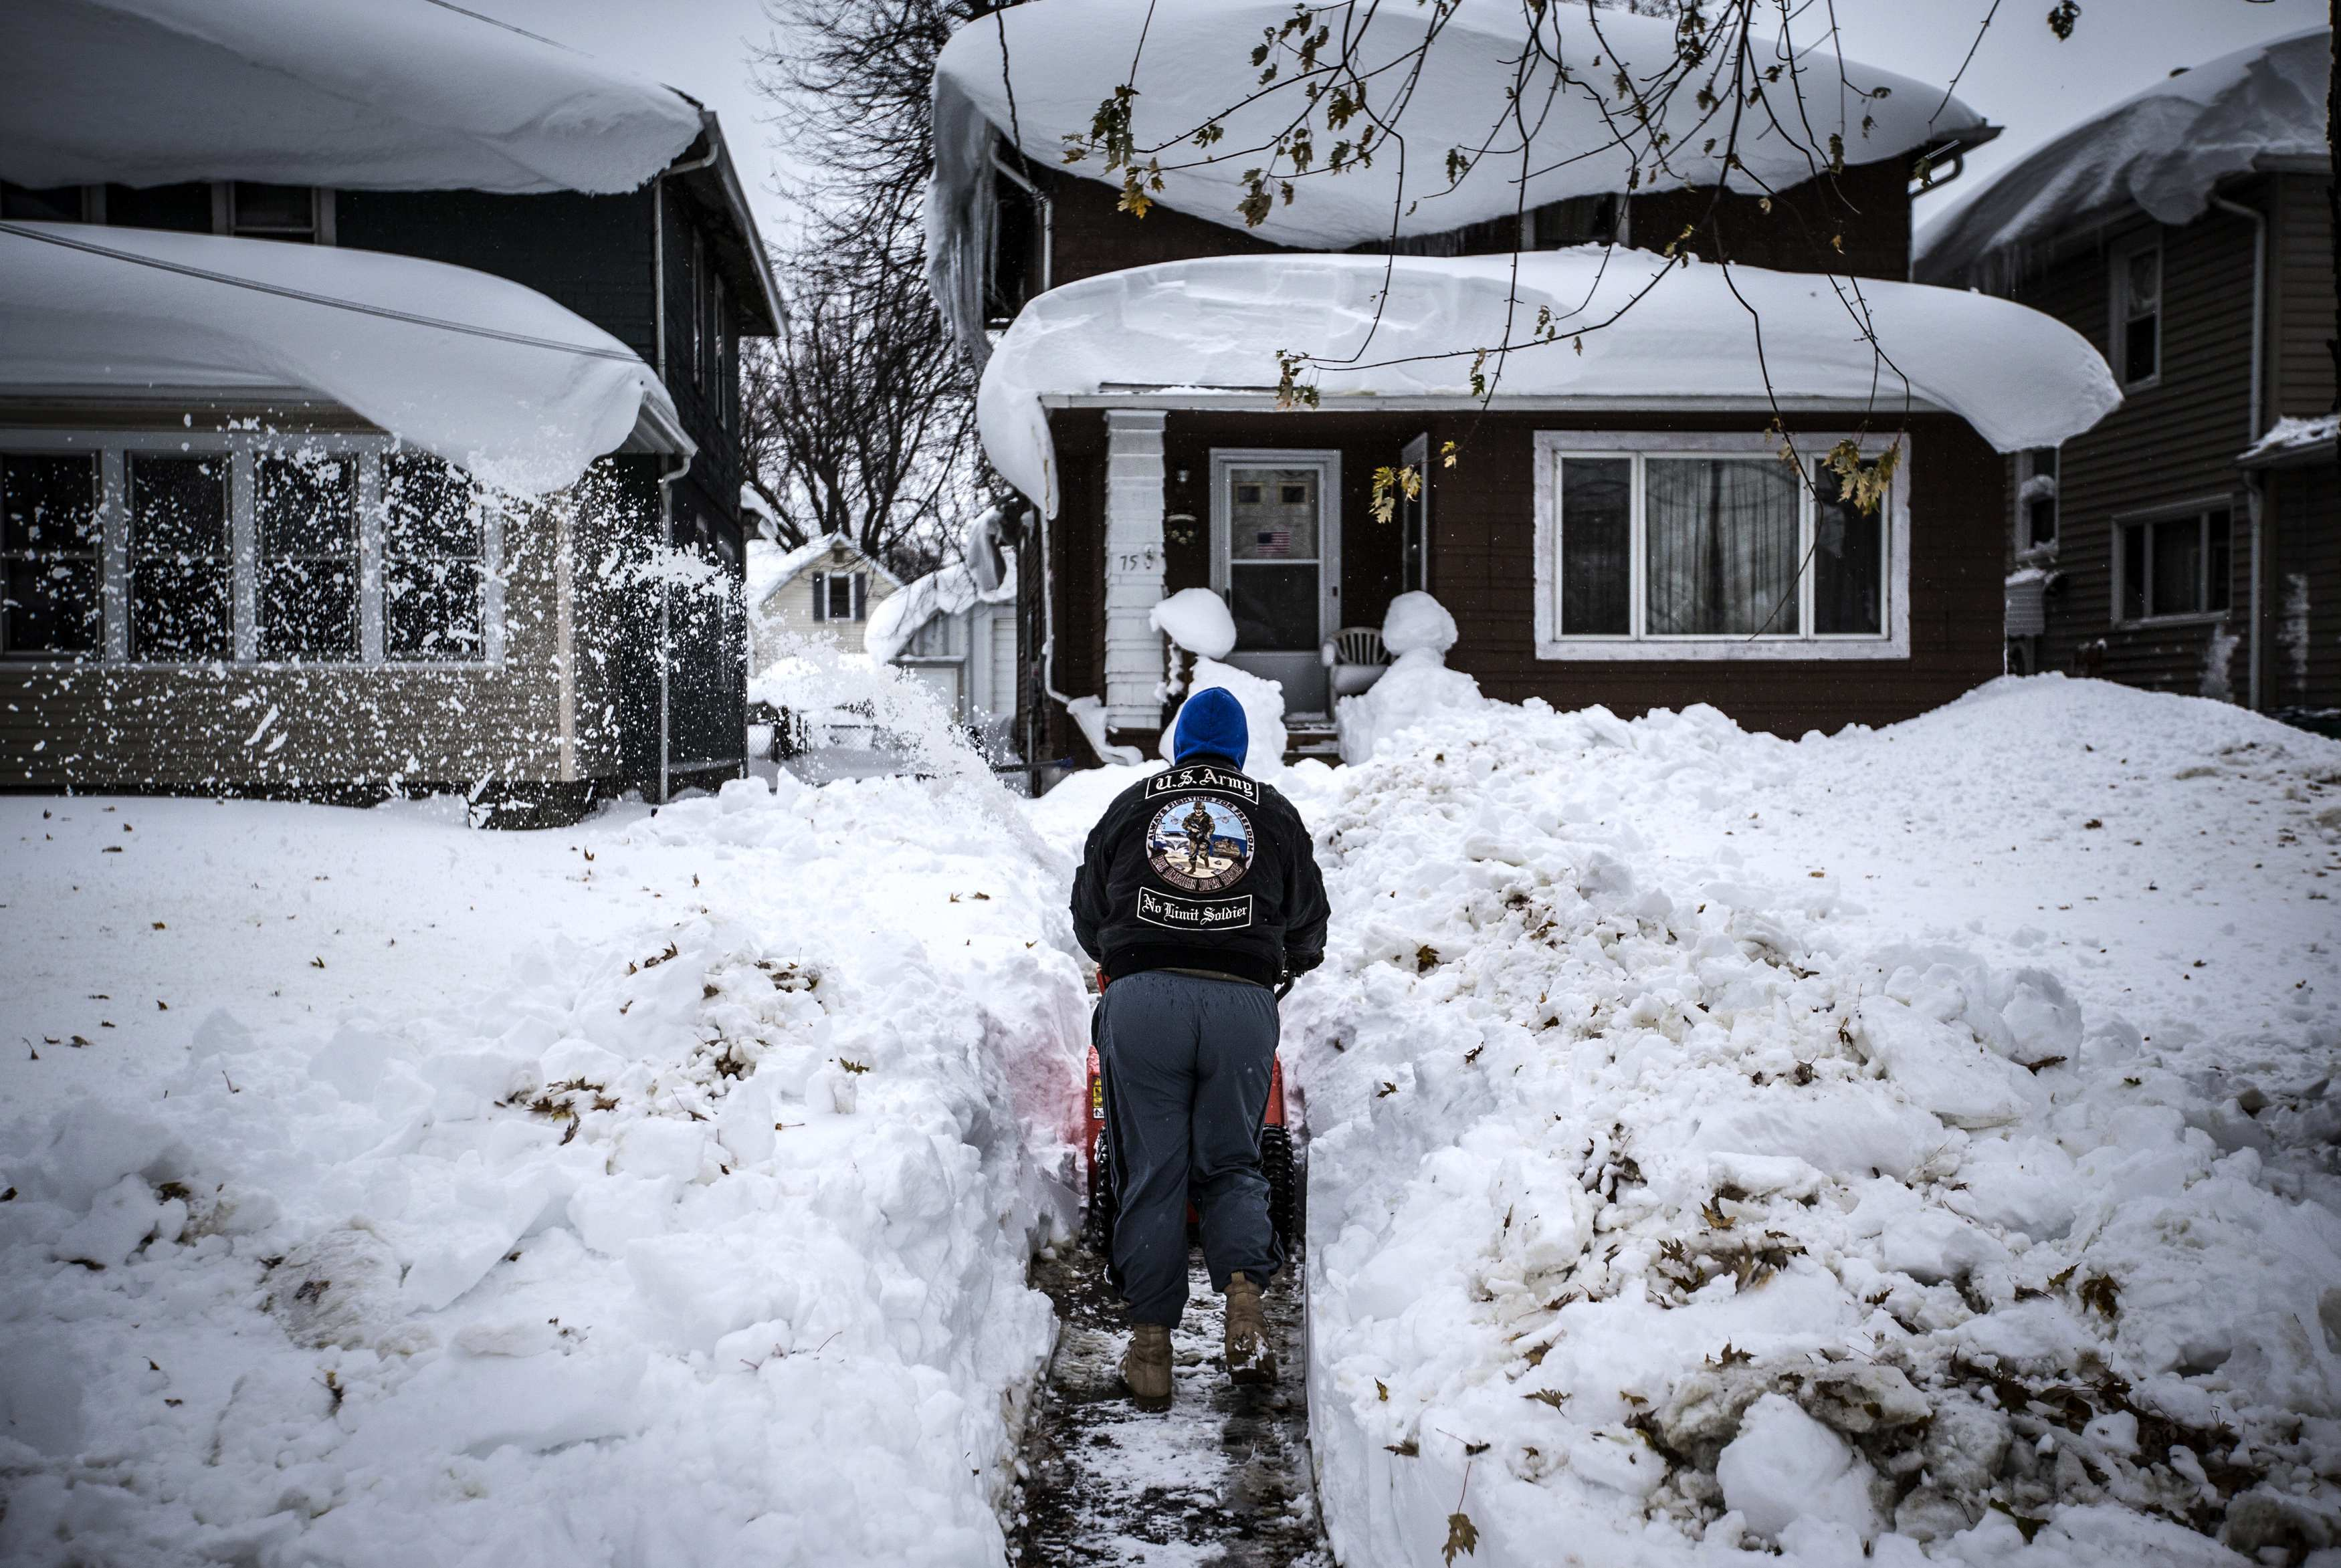 Buffalo New York Area Digs Out From Snow Ahead Of Flood